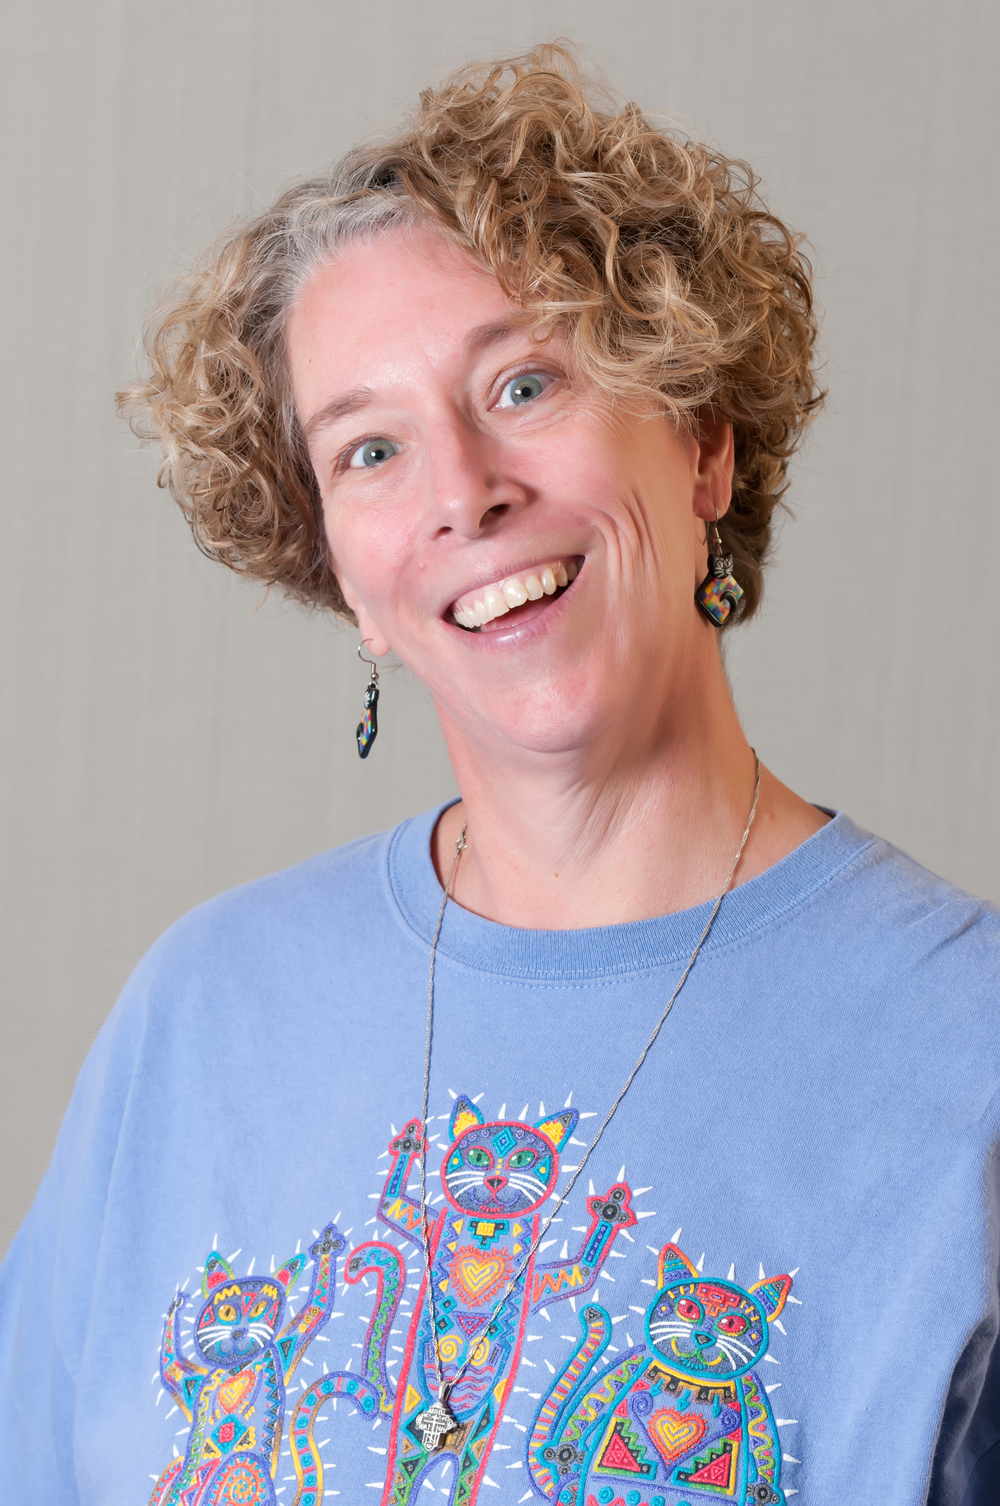 Barb Barlow is the art teacher at Lange Middle School.   mailto:BBarlow@CPSk12.org  573-214-3250